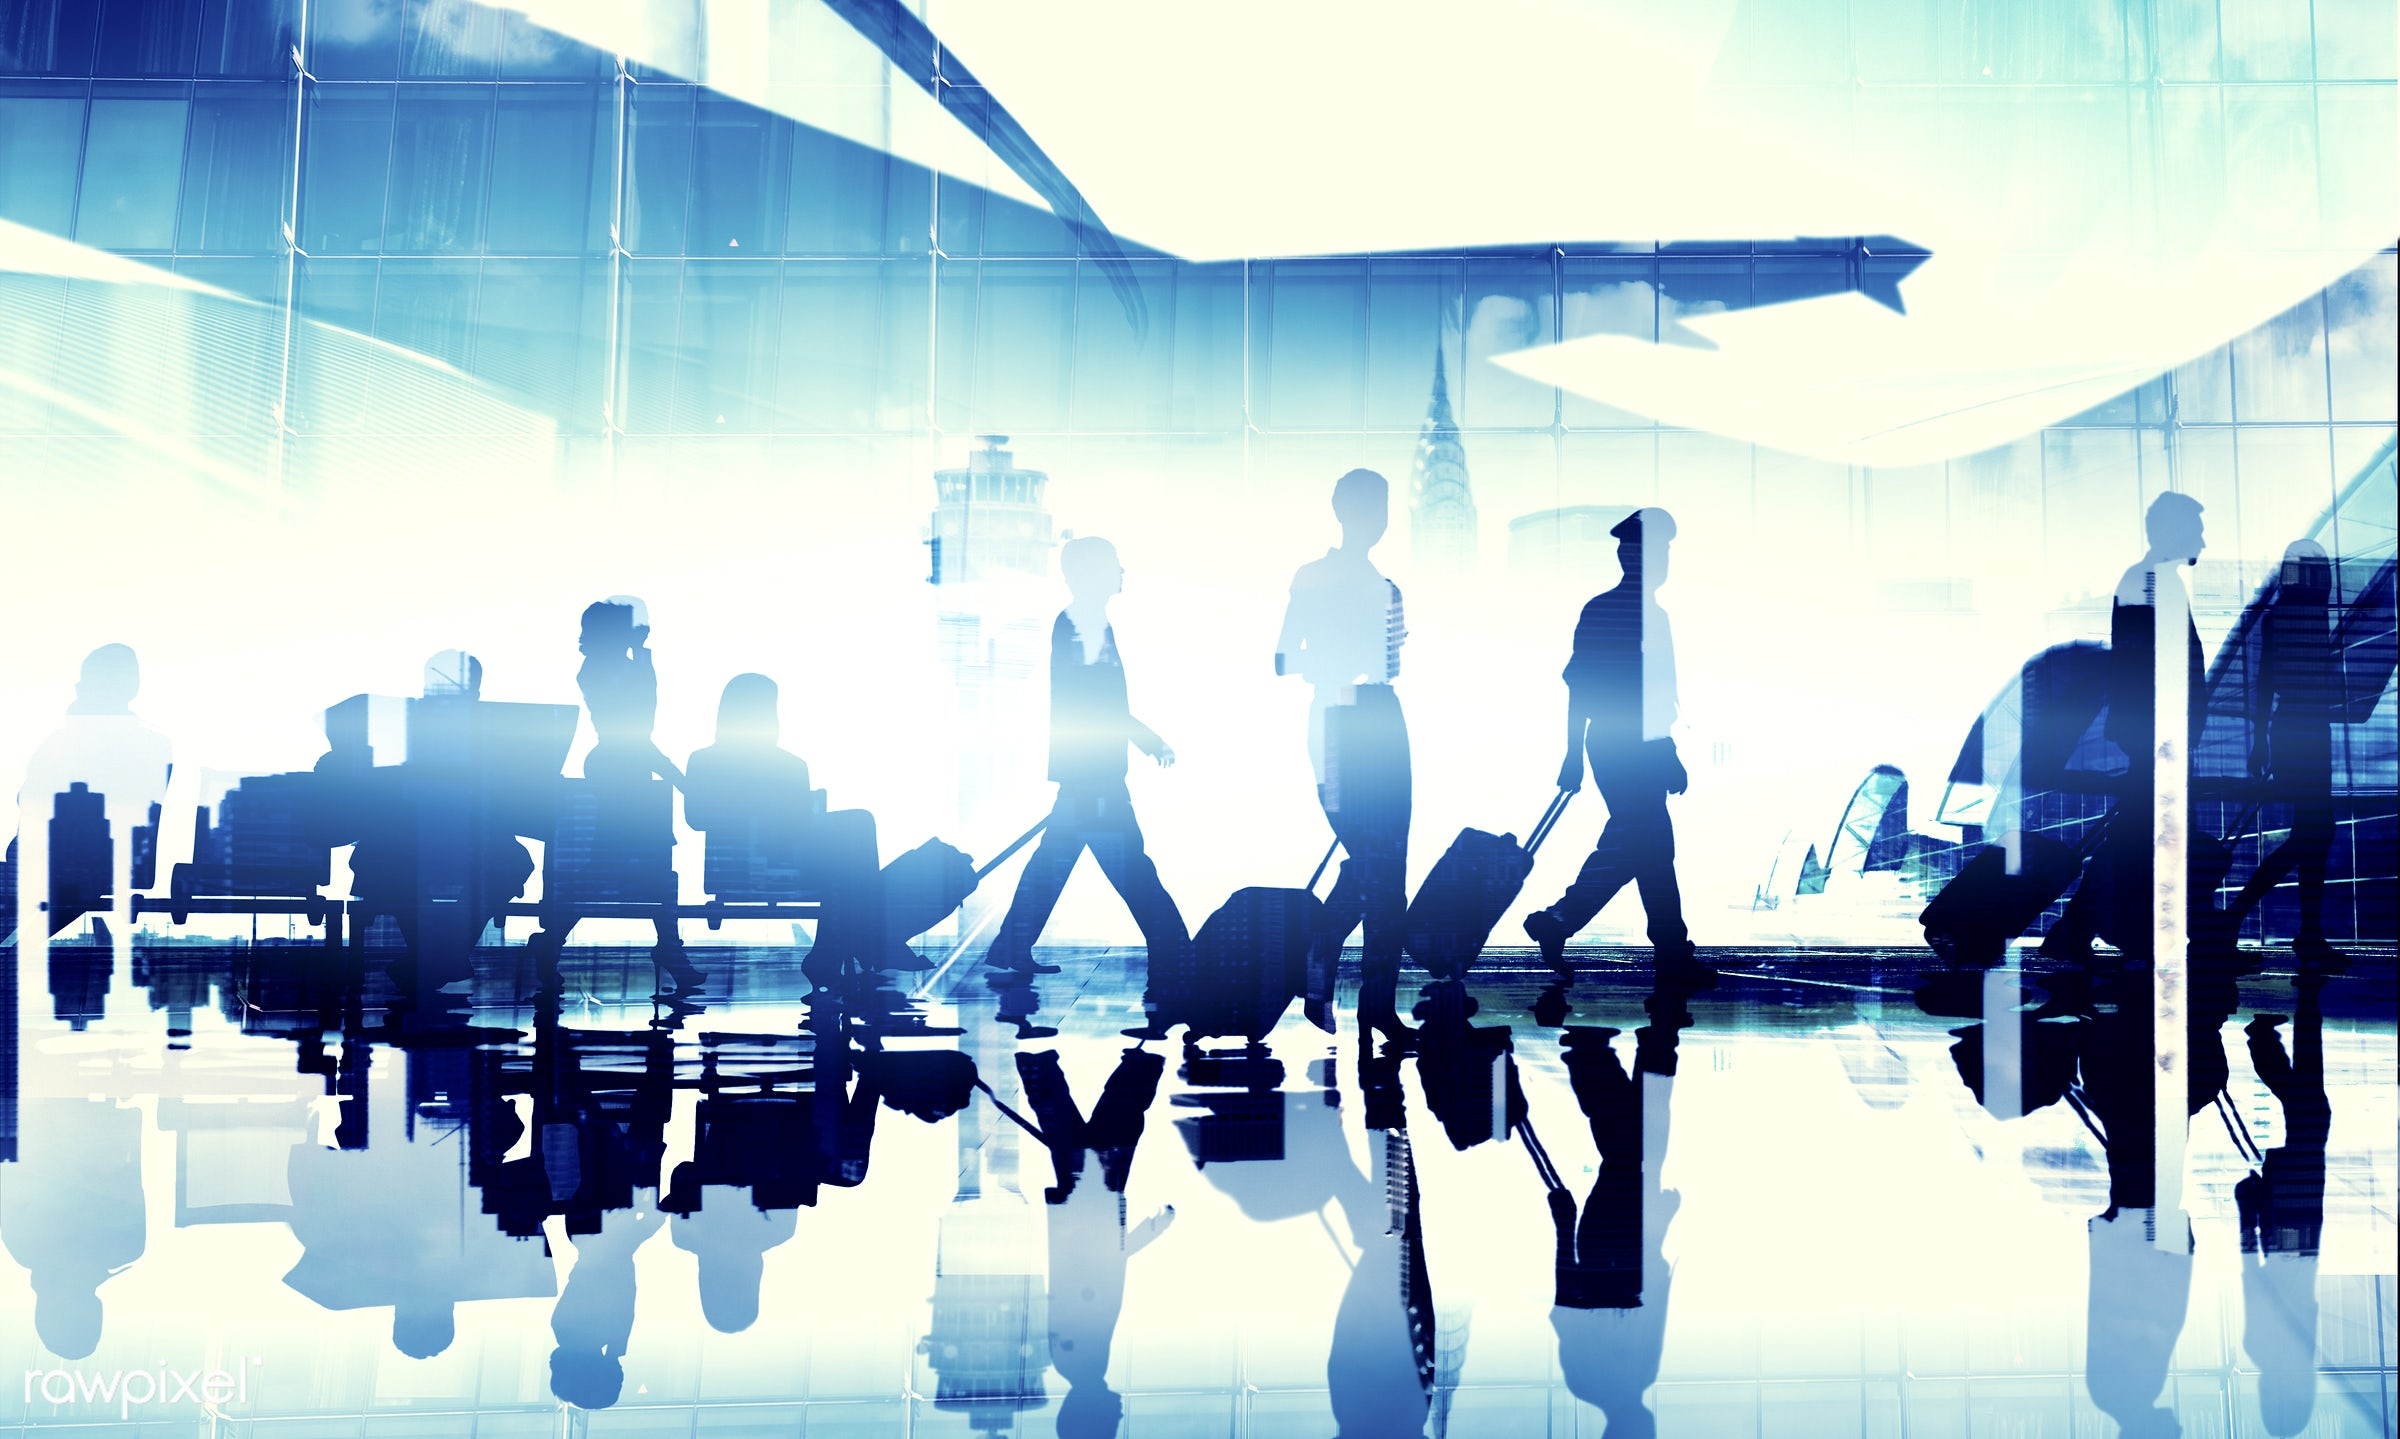 aircraft, airplane, airport, business, business people, business travel, businessmen, businesswomen, cabin crew, cloudscape...